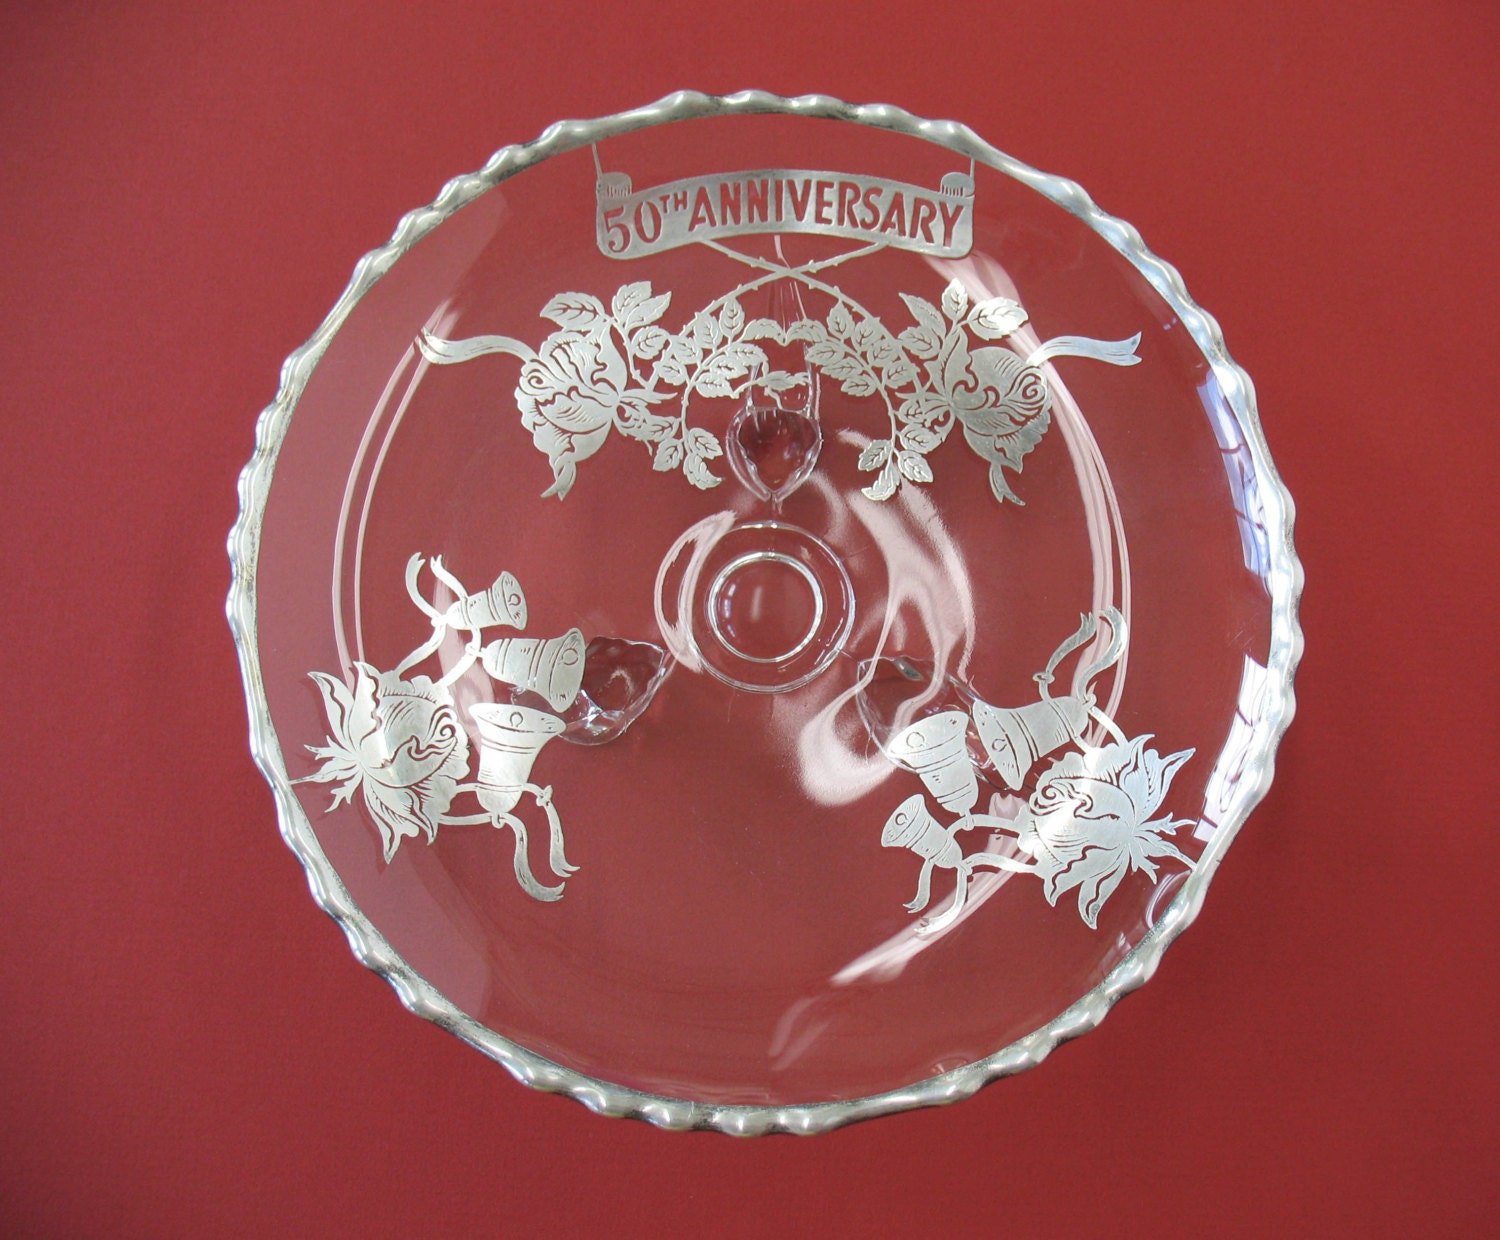 50th Wedding Anniversary Traditional Gifts: Anniversary Gift 50th Wedding Anniversary Plate Silver Wedding